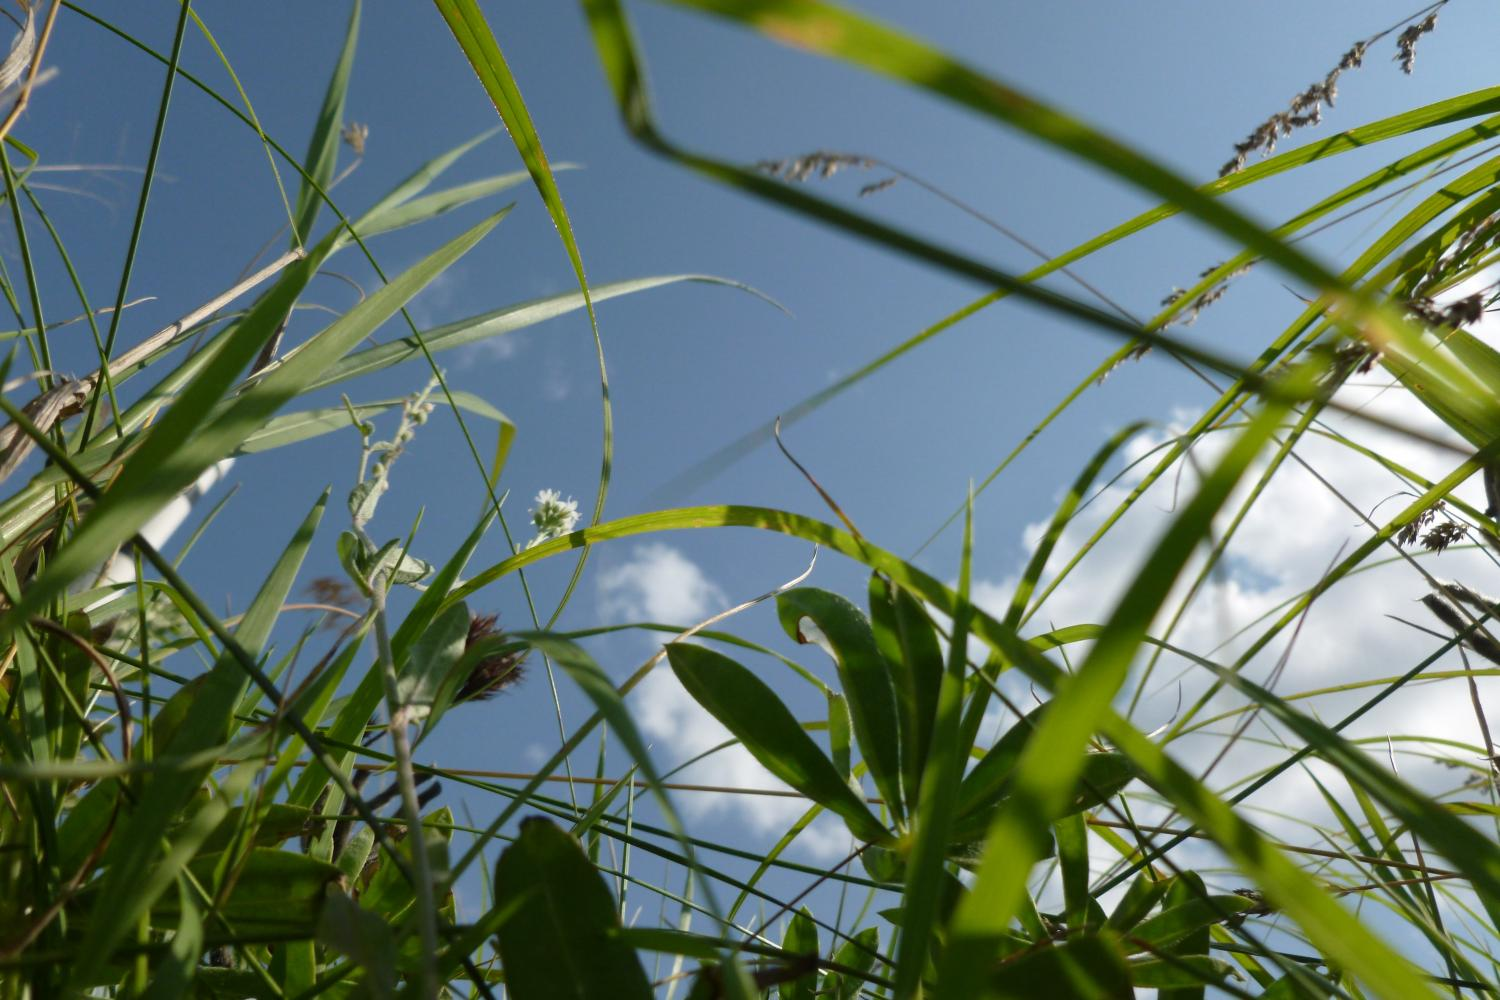 Plant response to carbon dioxide emissions depends on ...